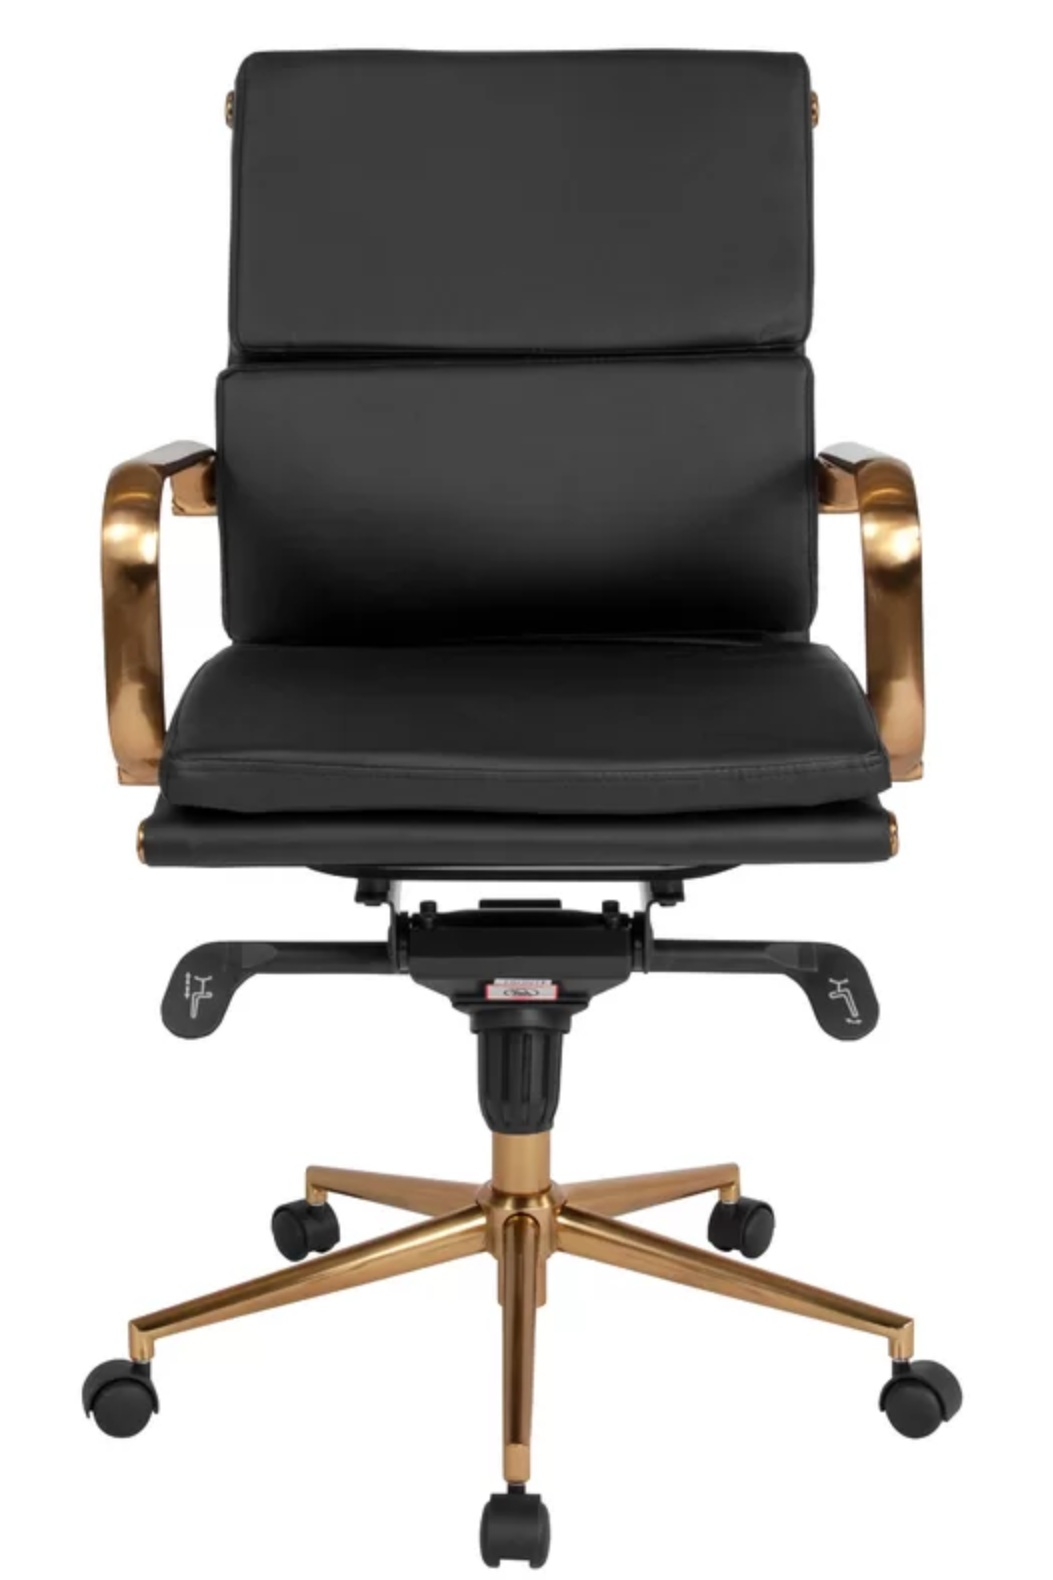 Lokendra Office Chair Black and Gold